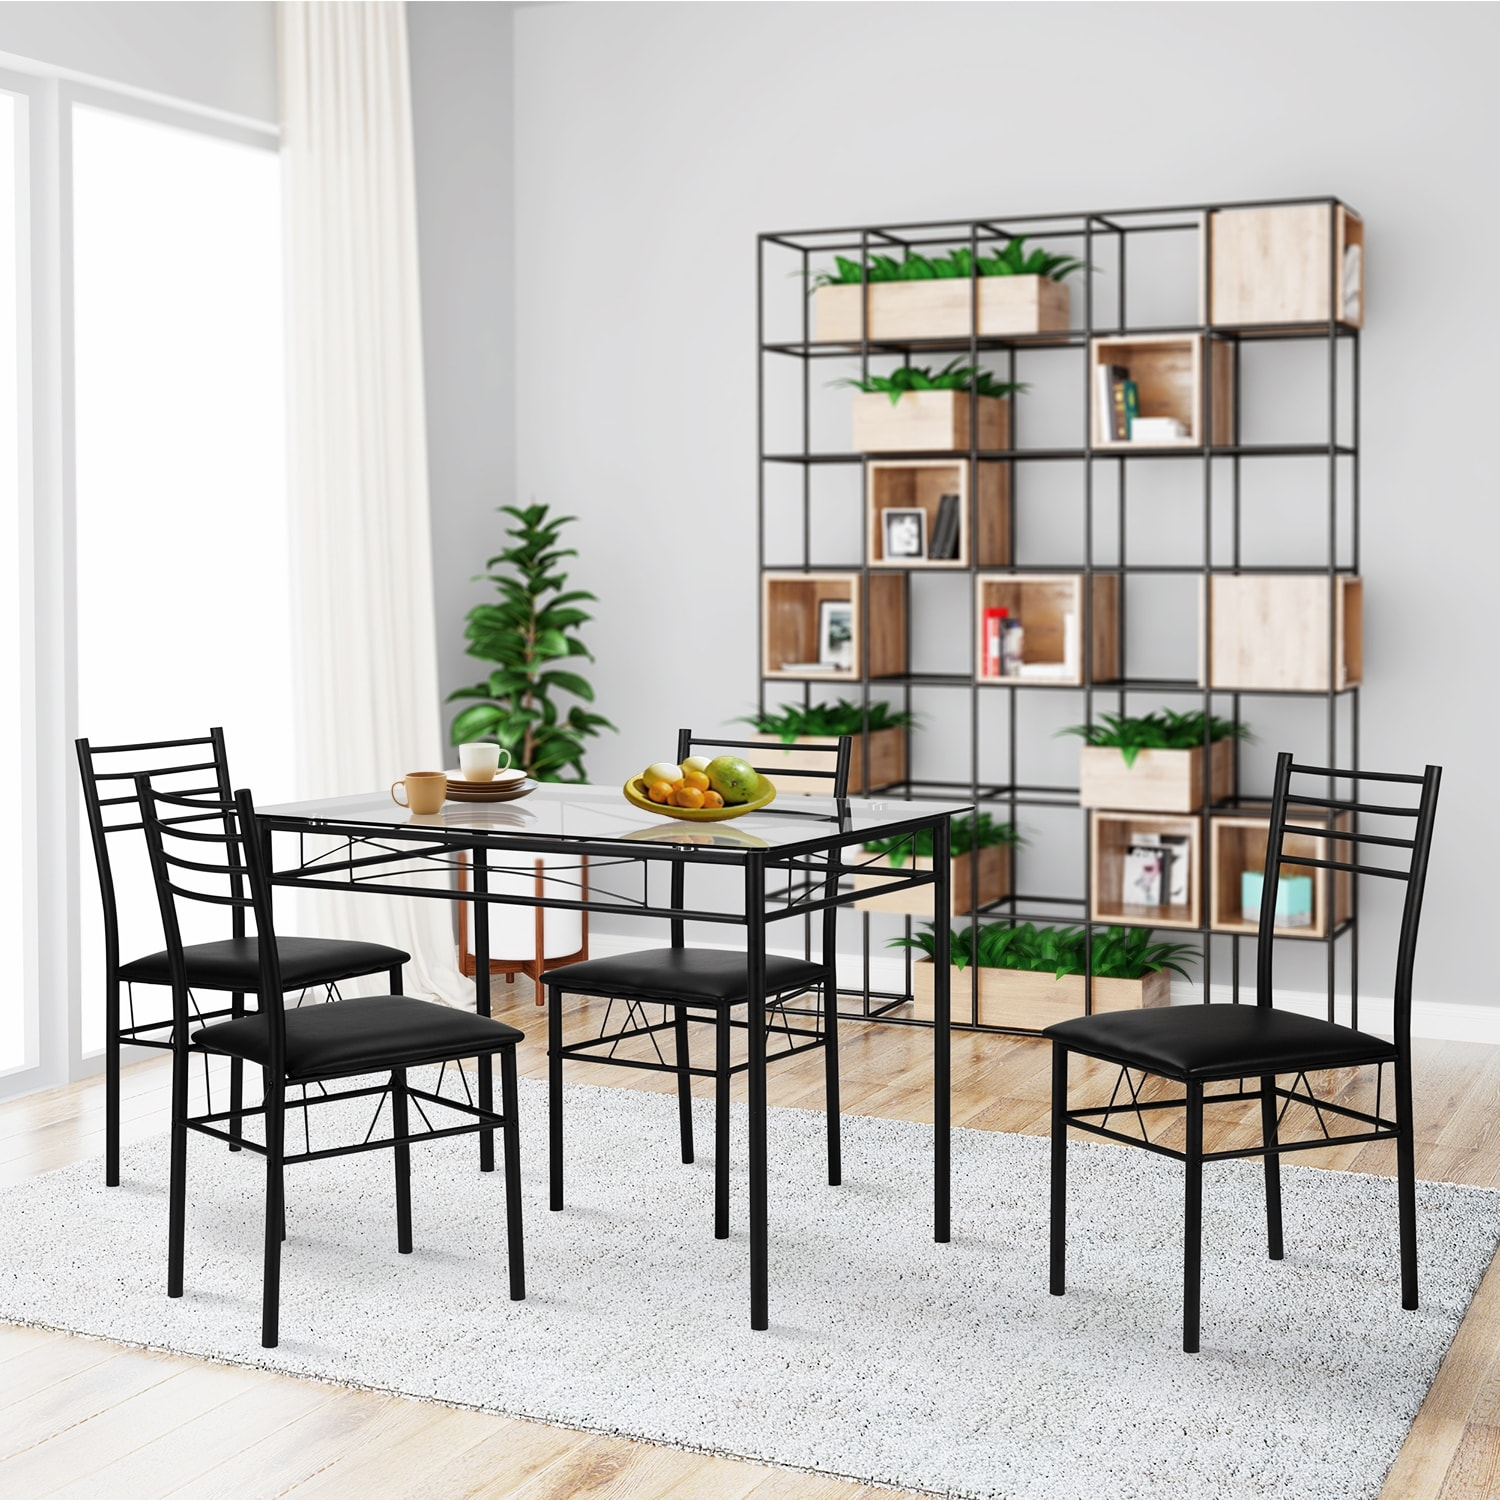 Shop Kitchen Dining Table Set,Glass Table and 4 Chairs(Black/Silver ...